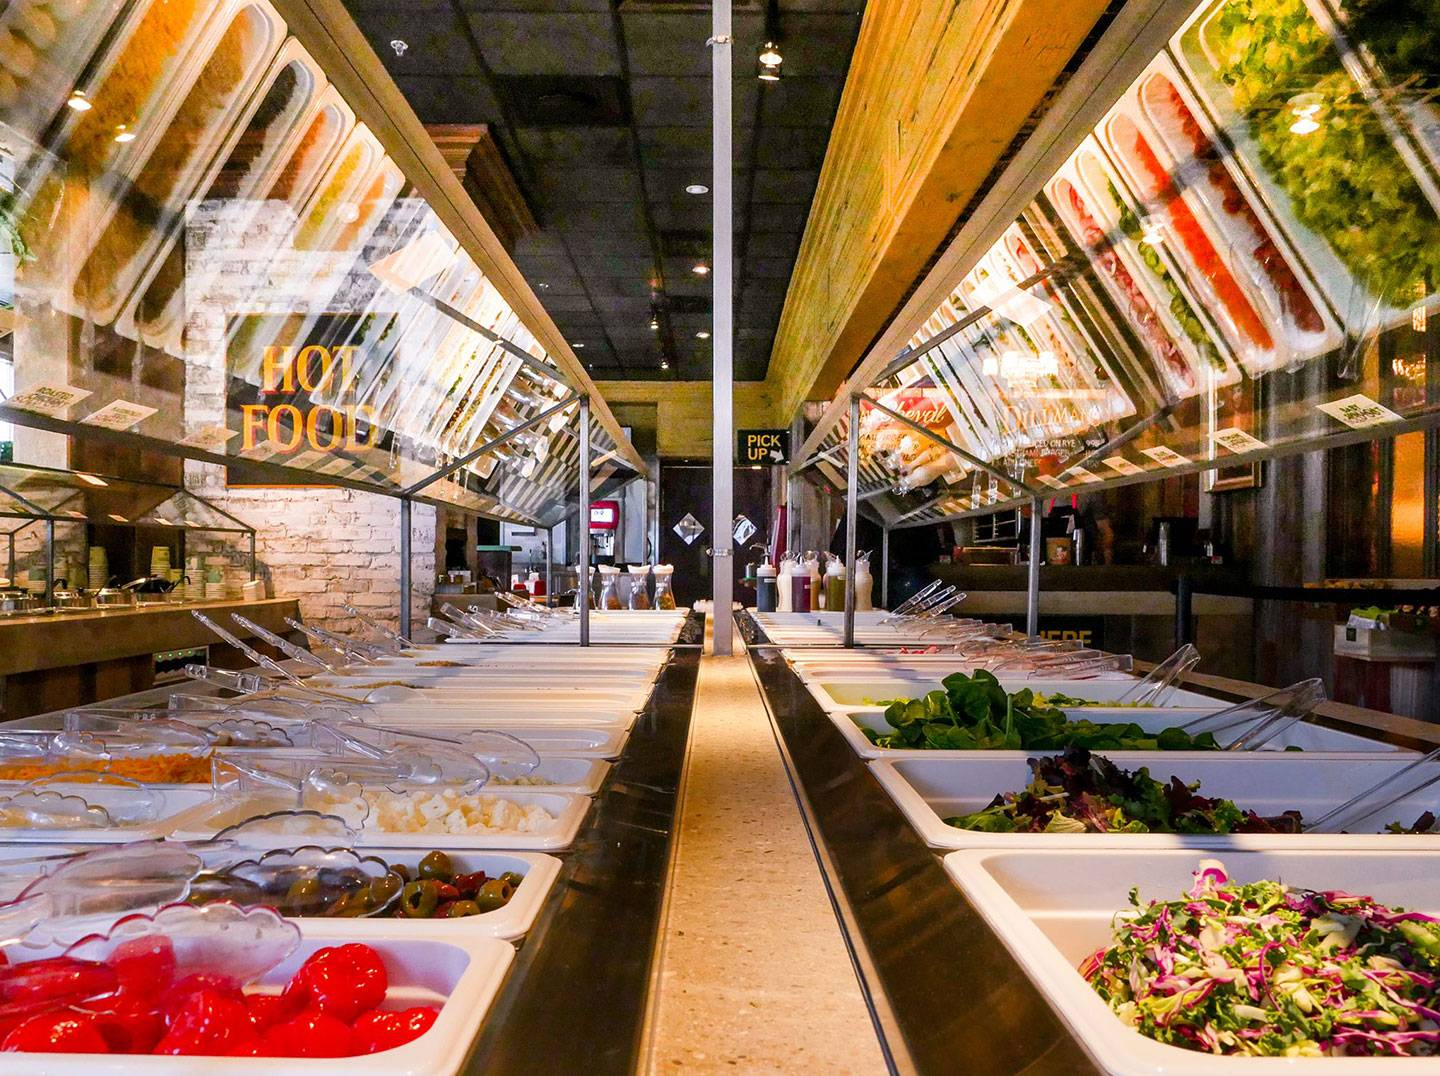 20170211a January Detox: Healthy Eateries in Chicago's River North